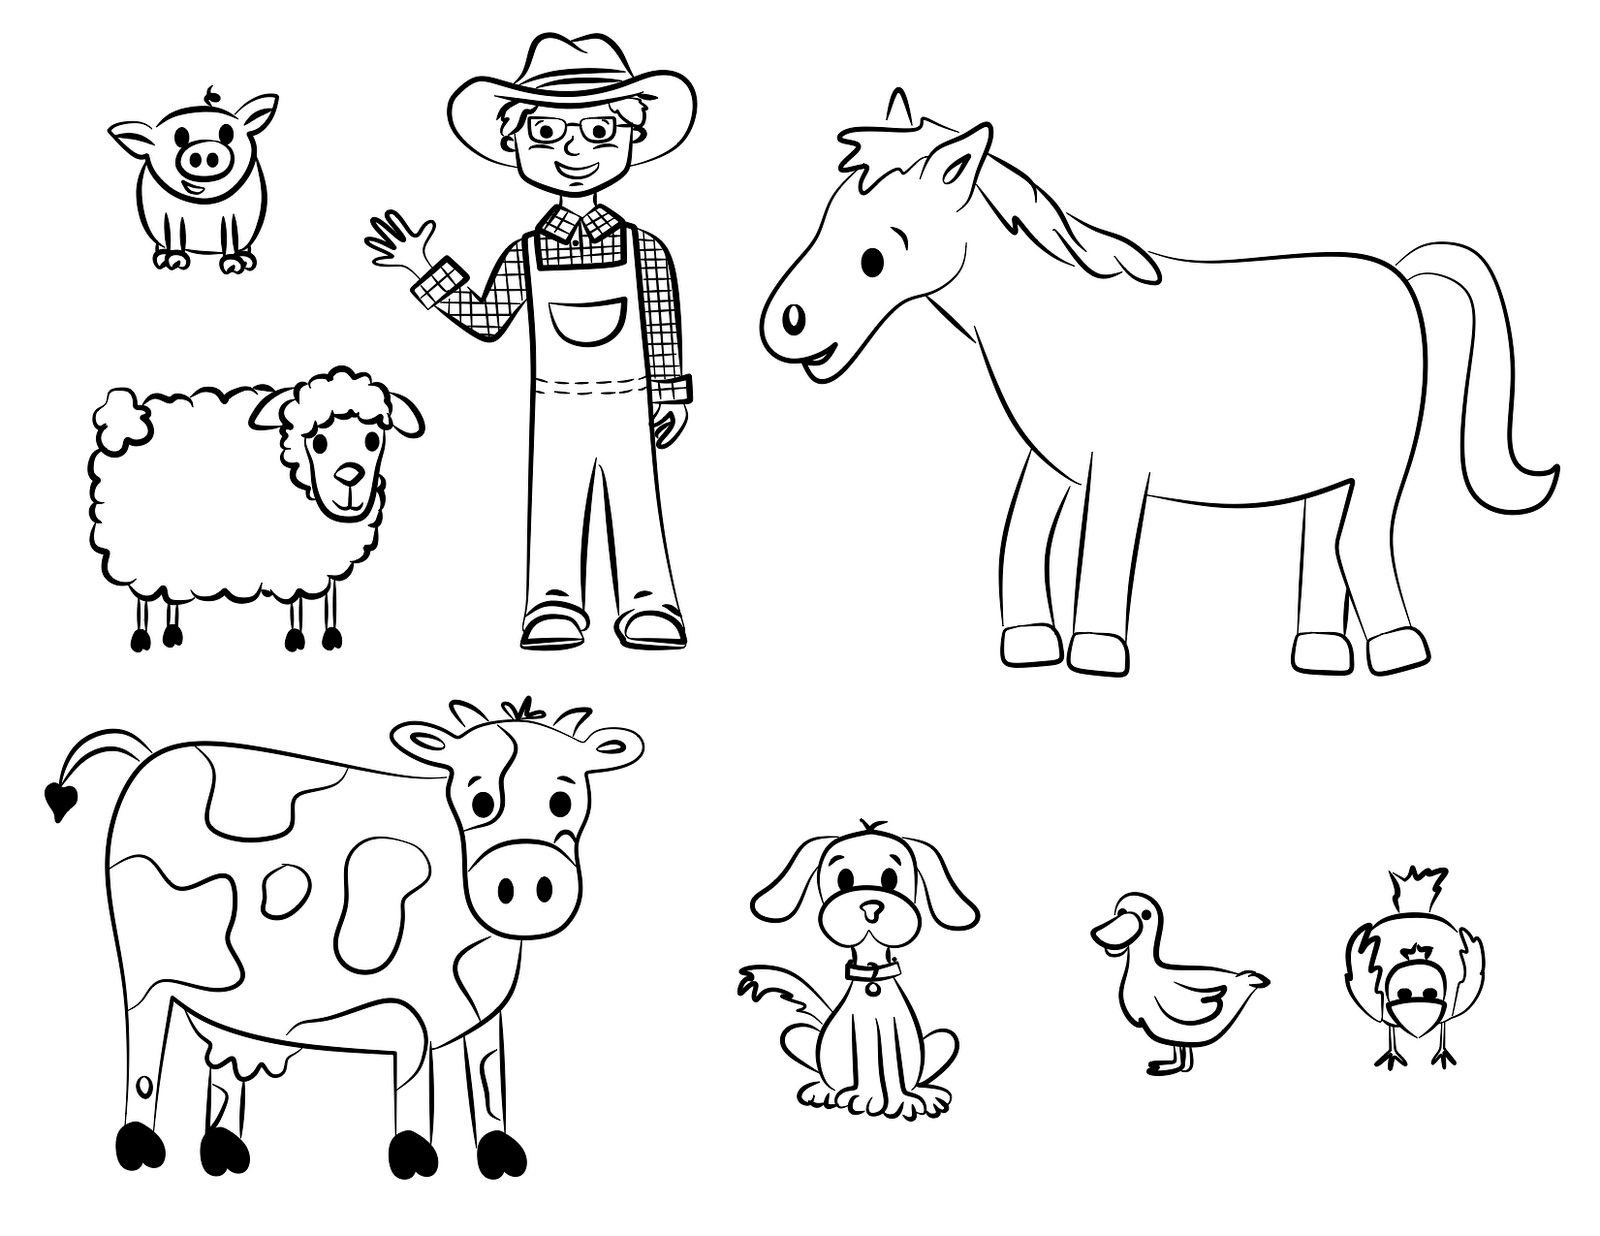 worksheet Animal Farm Worksheets cow animals coloring pages for kids printable animal farm farm